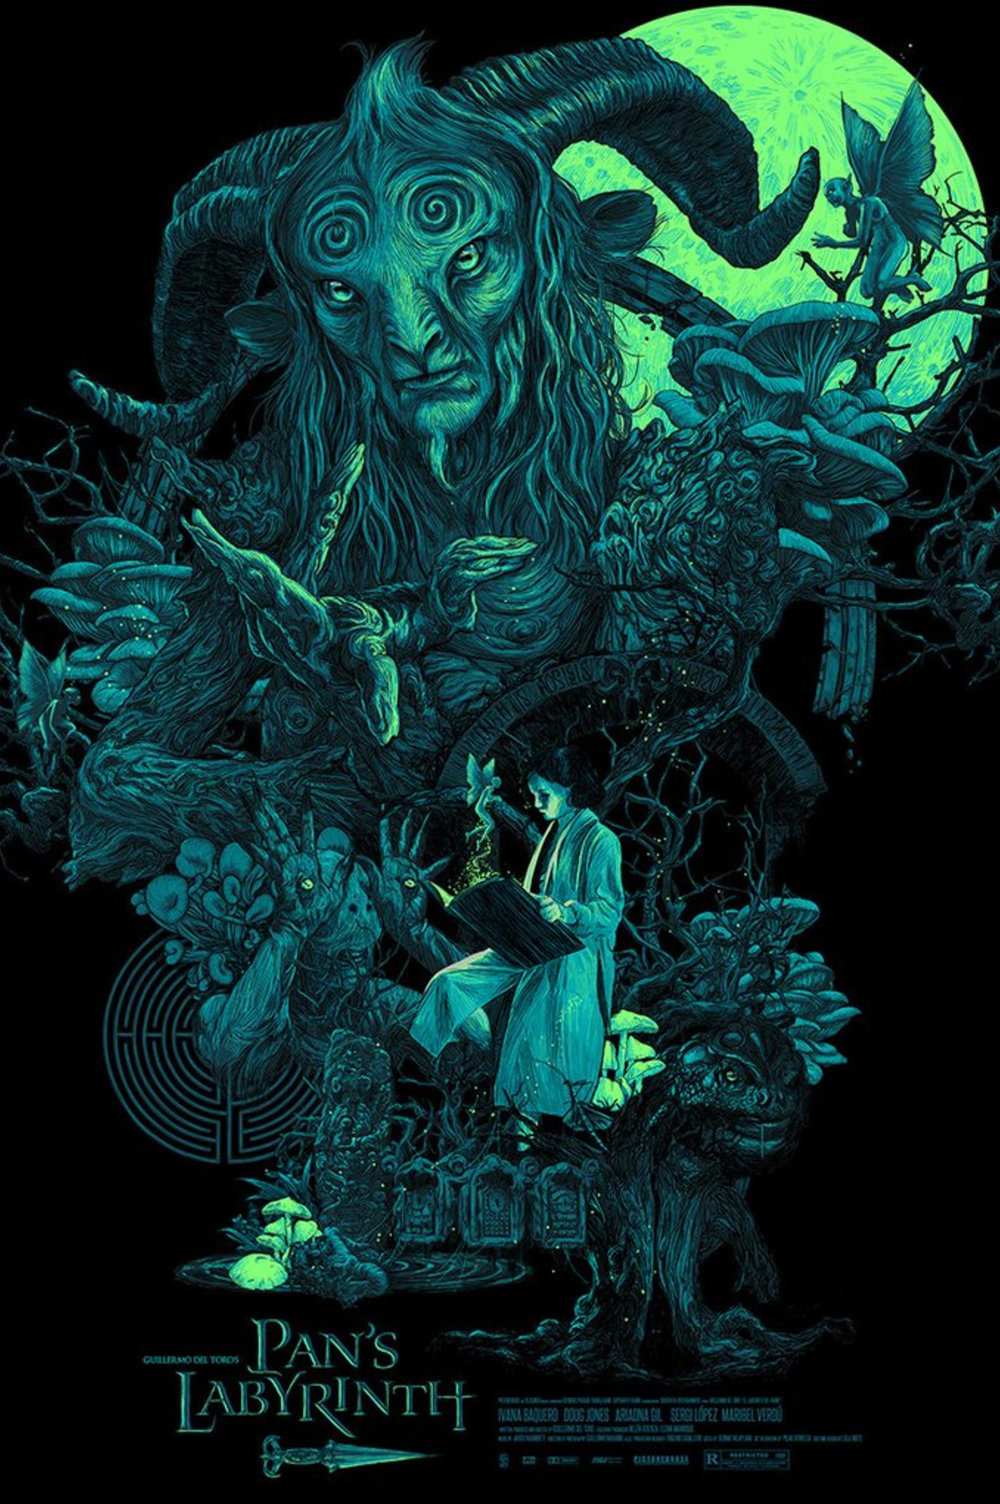 Hero complex gallery 39 s blacklight art show puts pop culture icons in a new light geektyrant - Fresh pan s labyrinth wallpaper ...